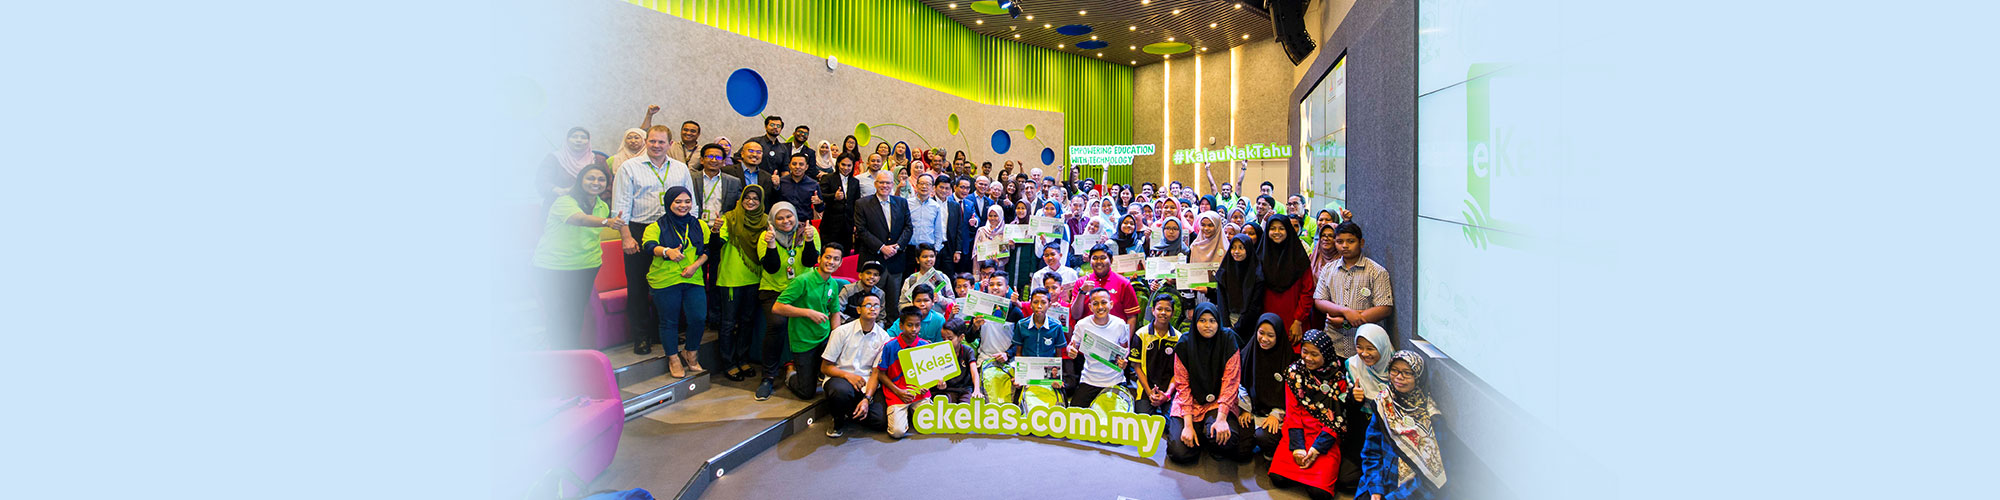 Maxis' eKelas On A Strong Growth Momentum With Expanding Student Registrations And Reach